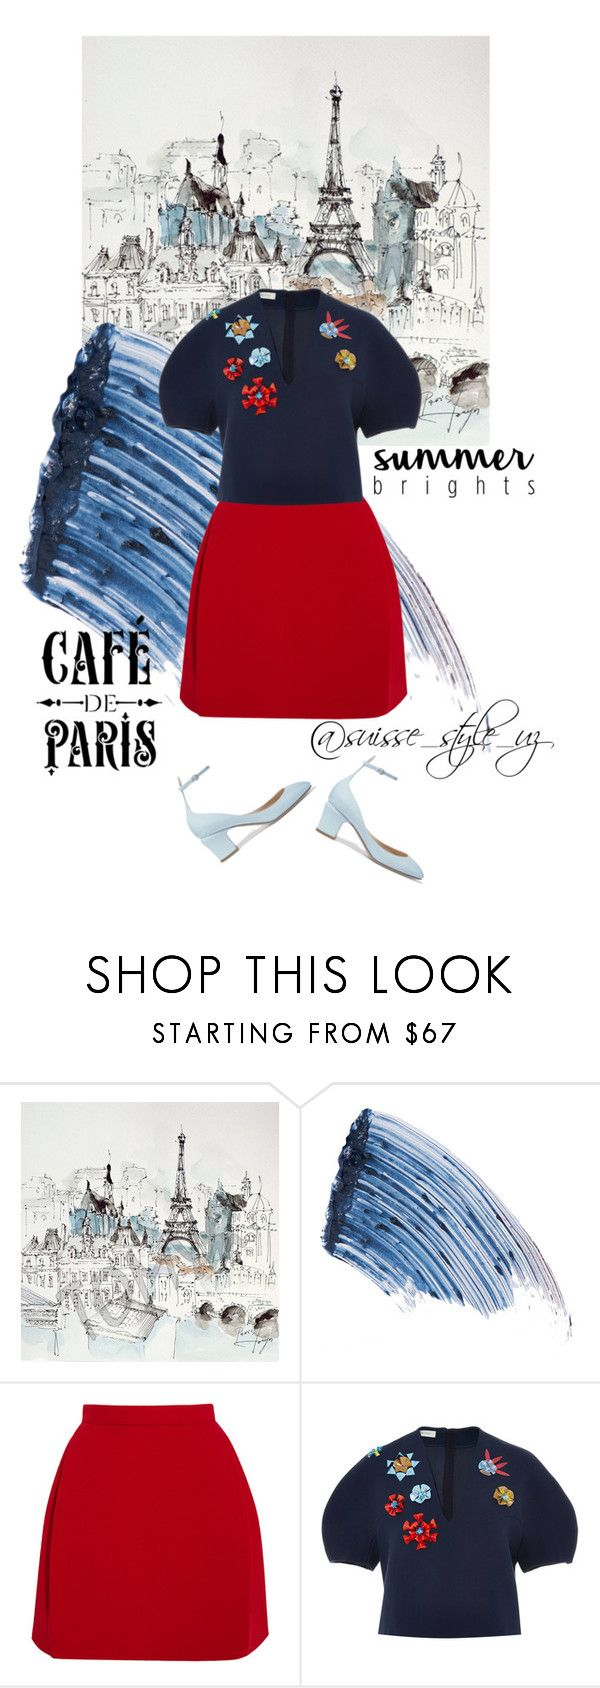 """""""✔️"""" by komilash ❤ liked on Polyvore featuring Sisley - Paris, Delpozo, Valentino, topsets, topset and summerbrights"""